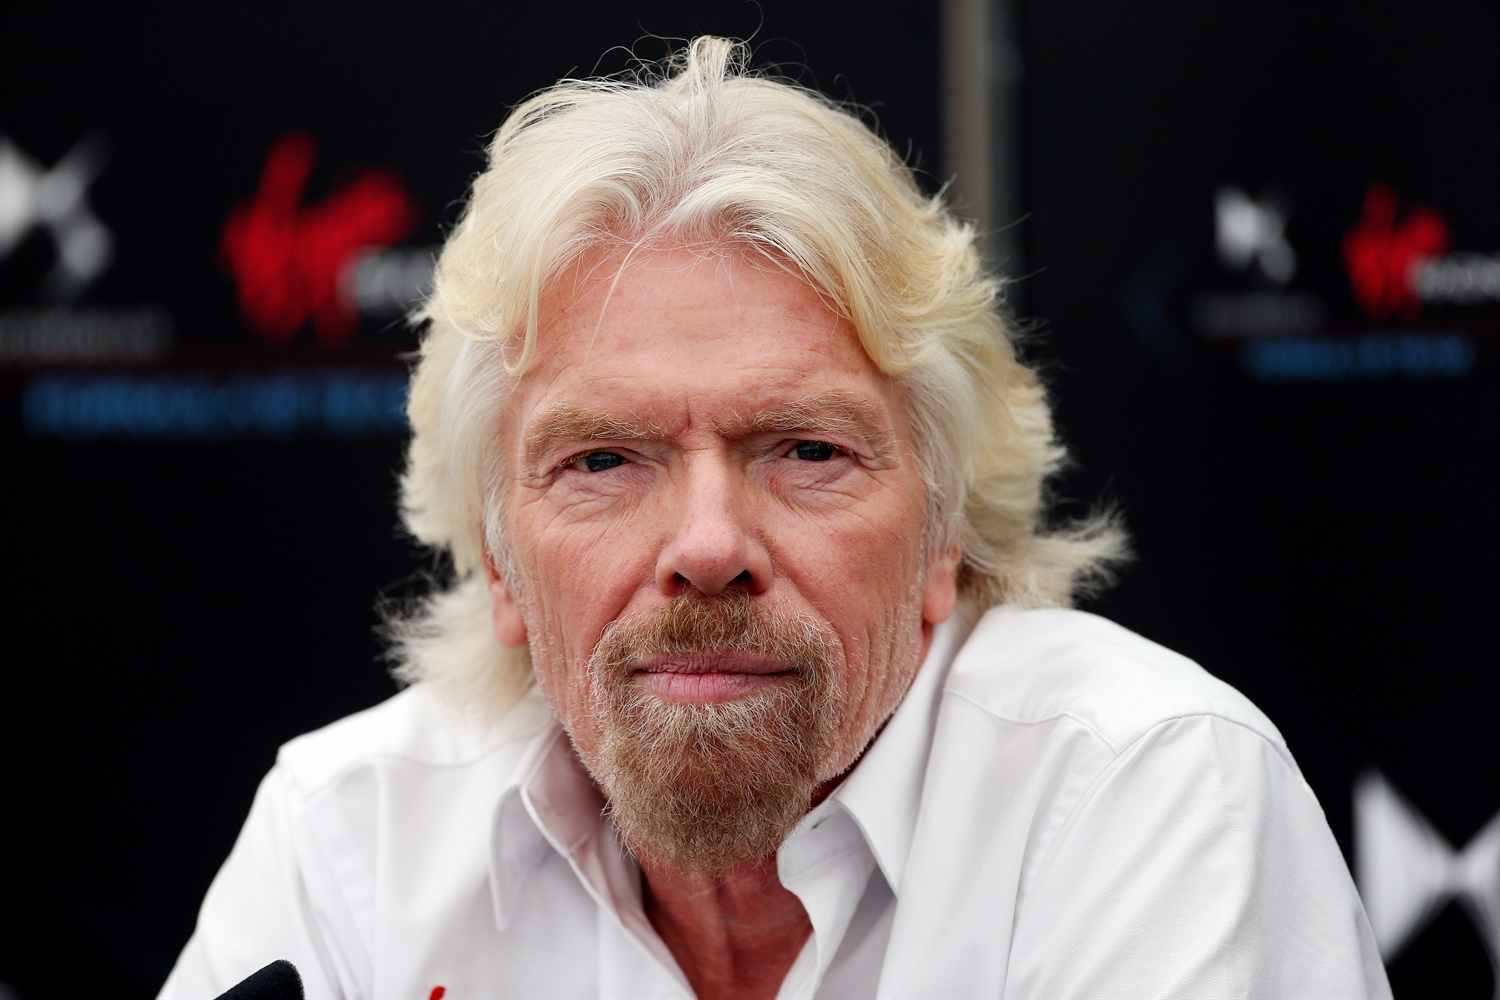 Backlash at rail boss Richard Branson as he says lateness 'annoys' him